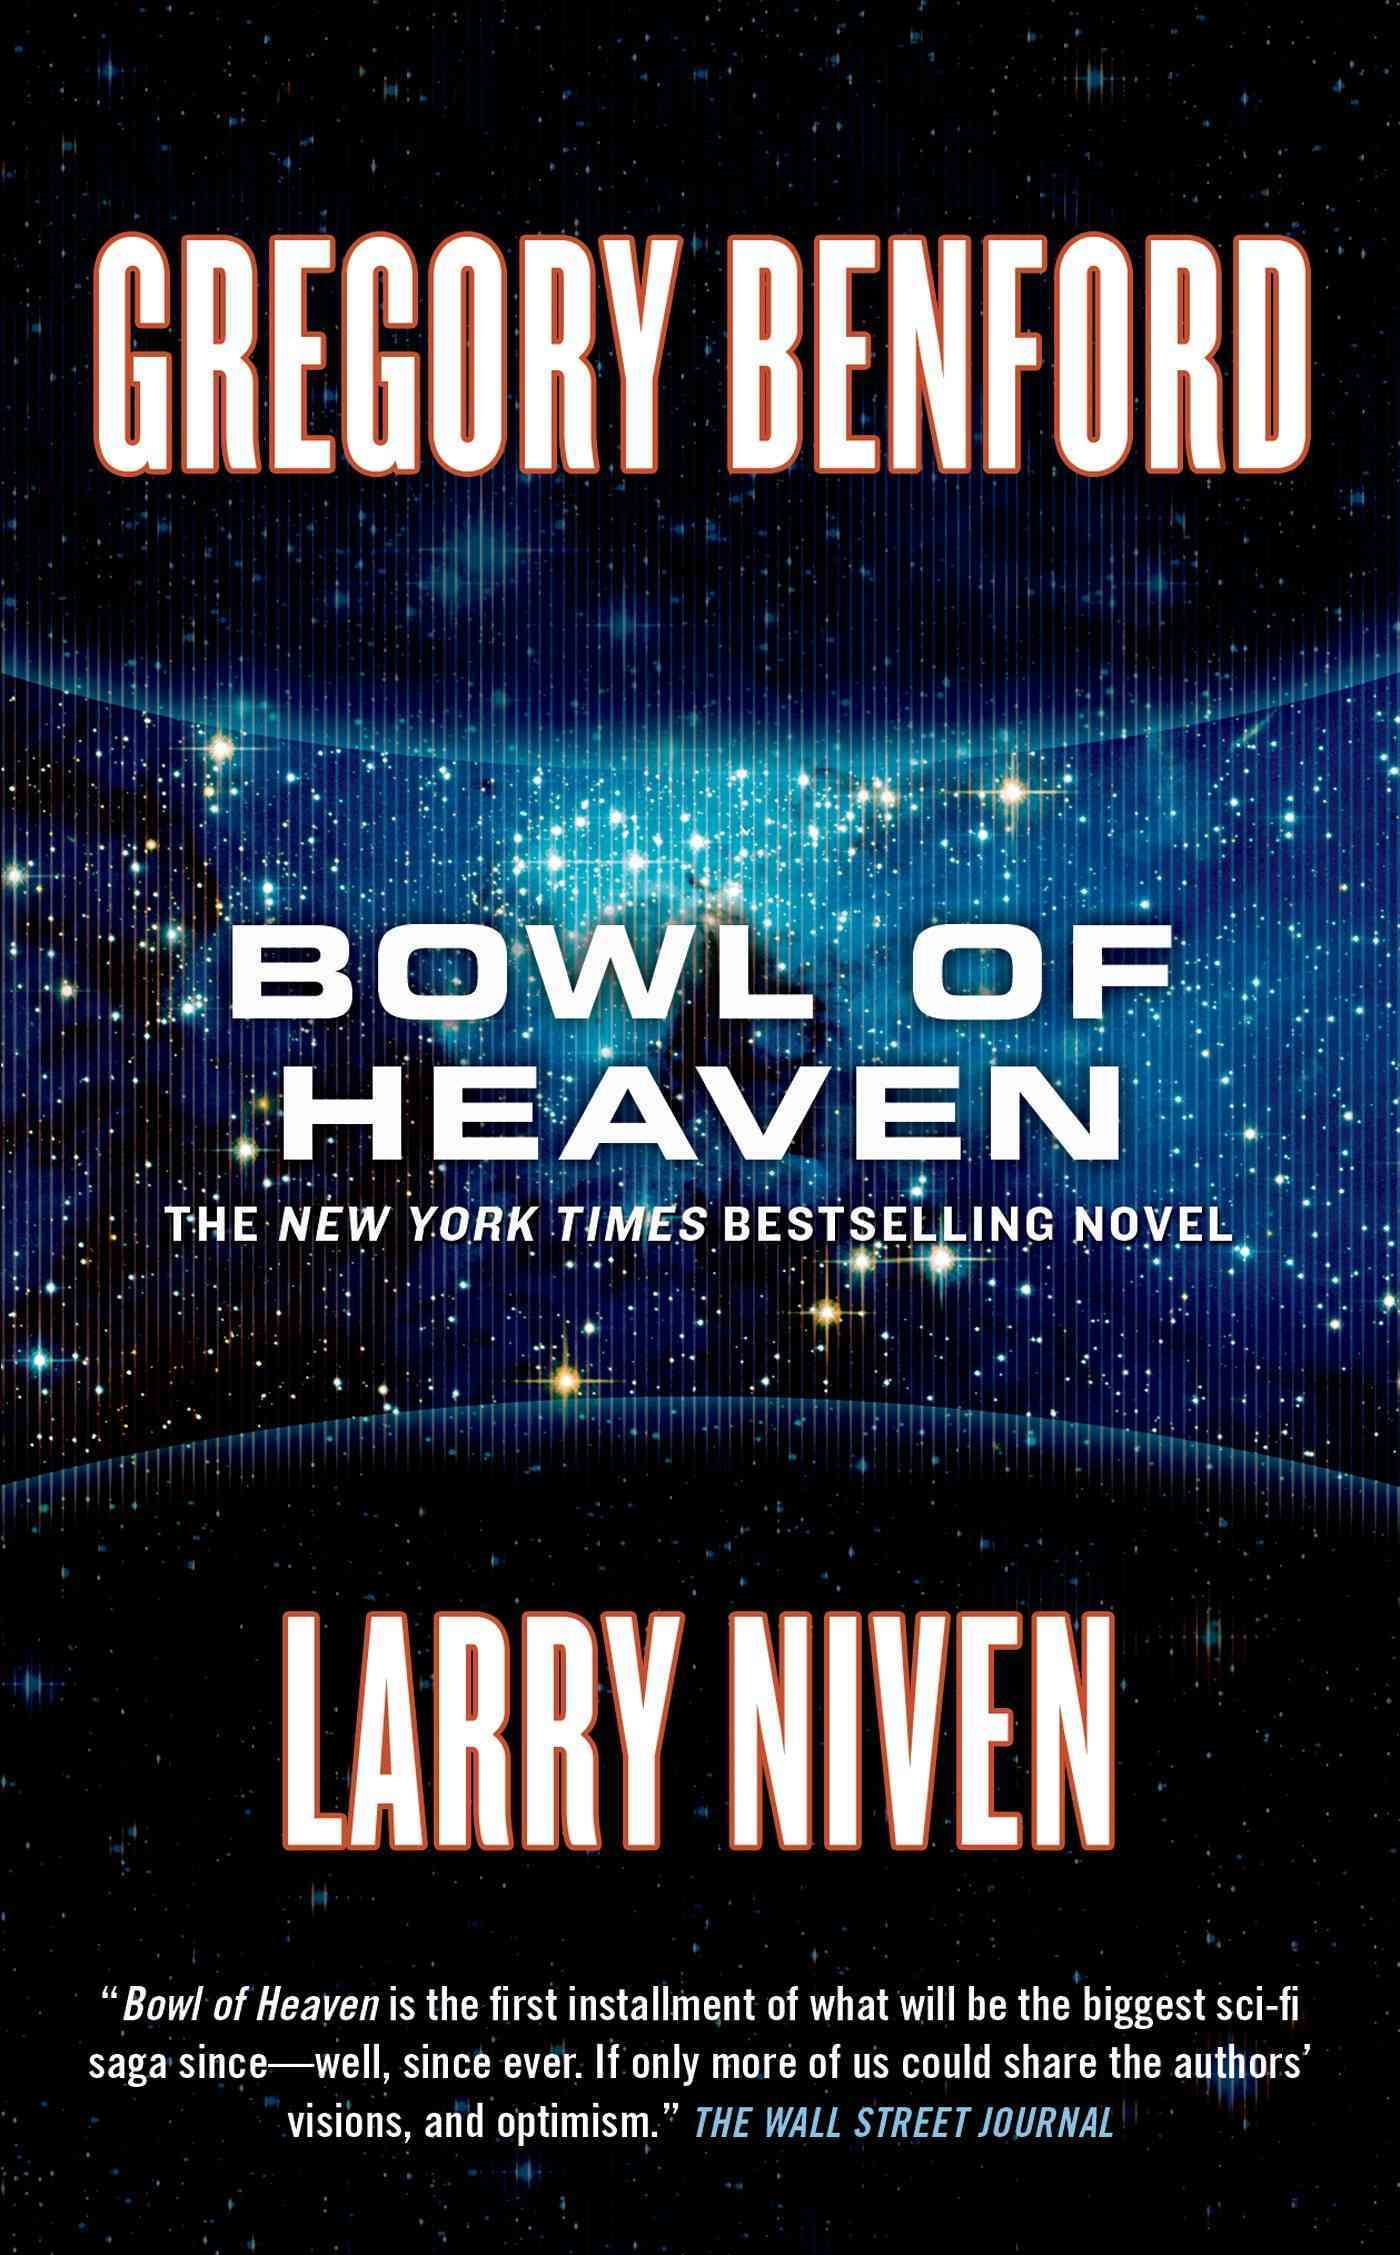 Bowl of Heaven By Benford, Gregory/ Niven, Larry